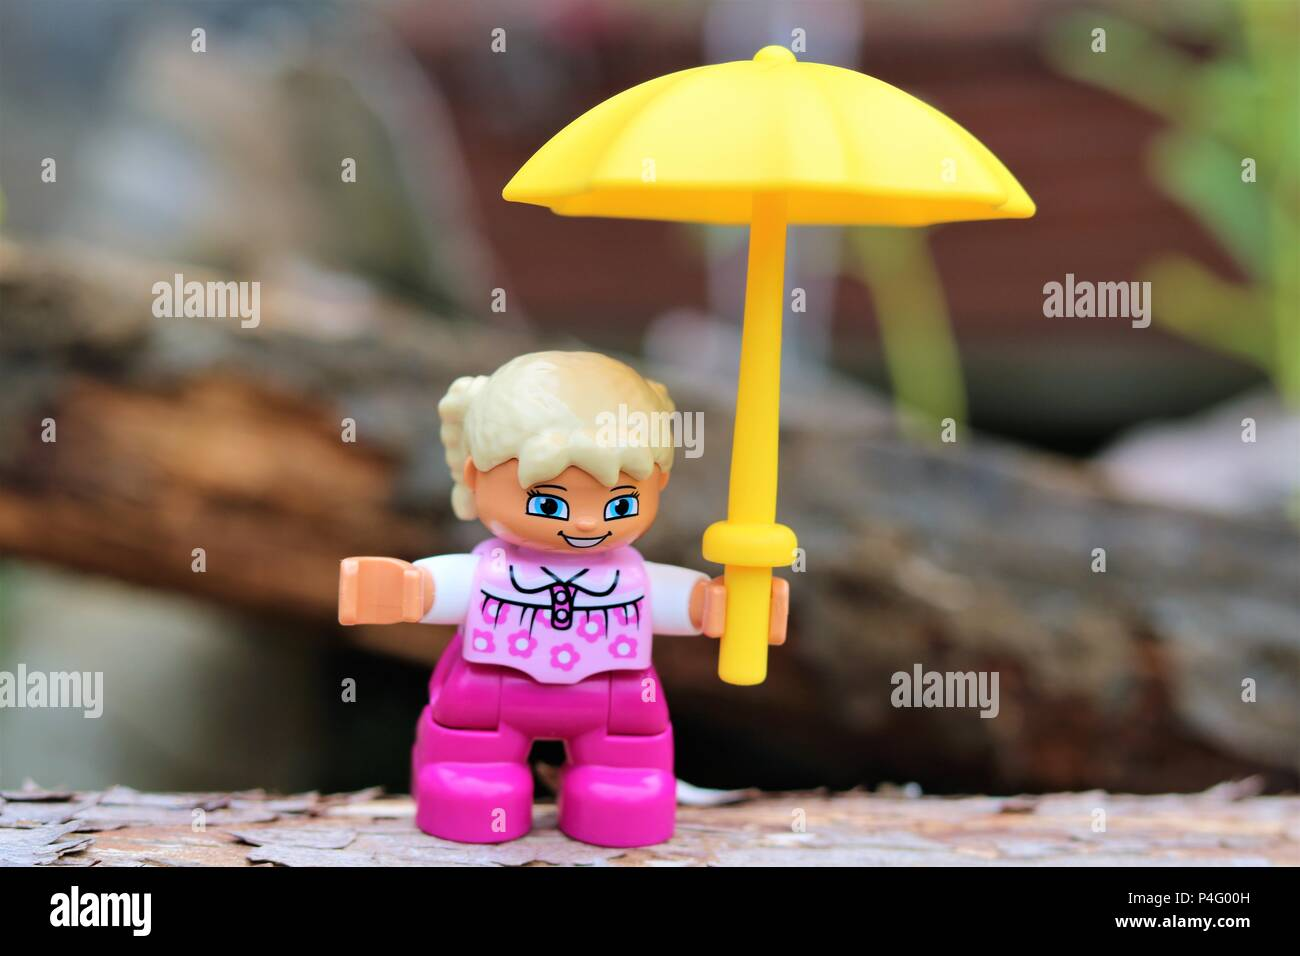 Duplo girl character holding a yellow umbrella against a blurred background - News Concept - Stock Image